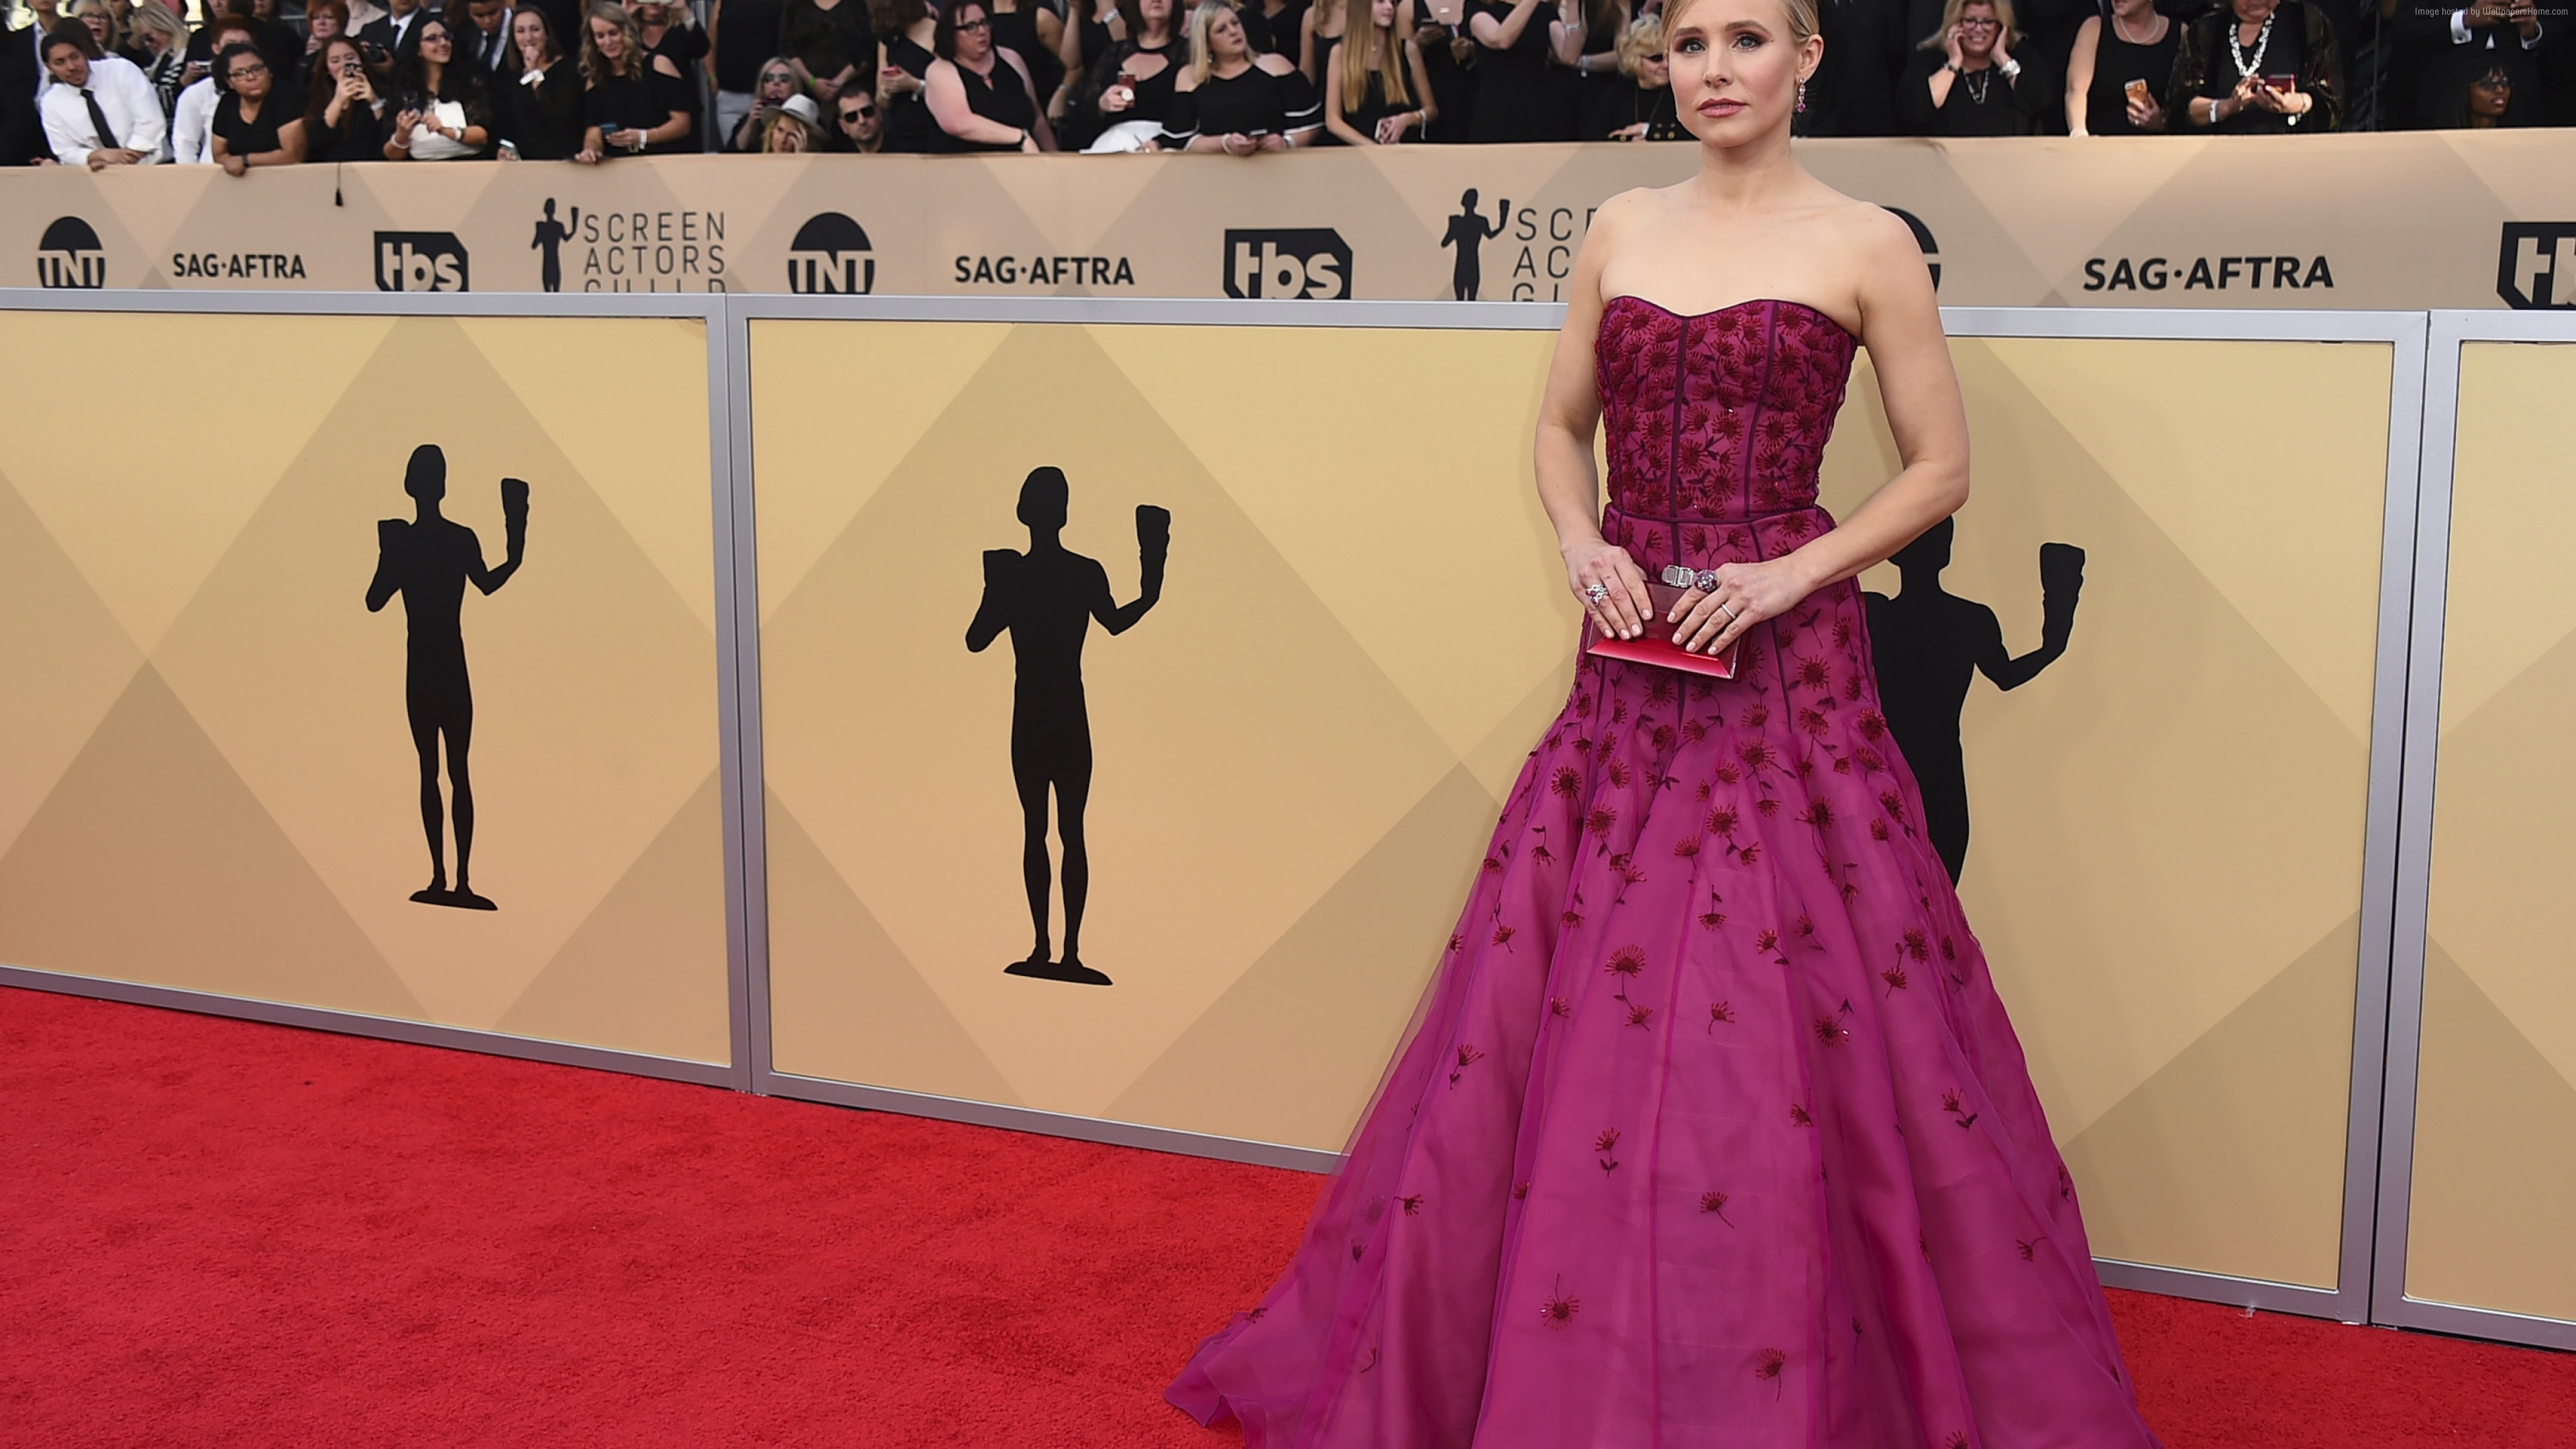 Wallpaper Kristen Bell, dress, Screen Actors Guild Awards 2018, 4k, Girls